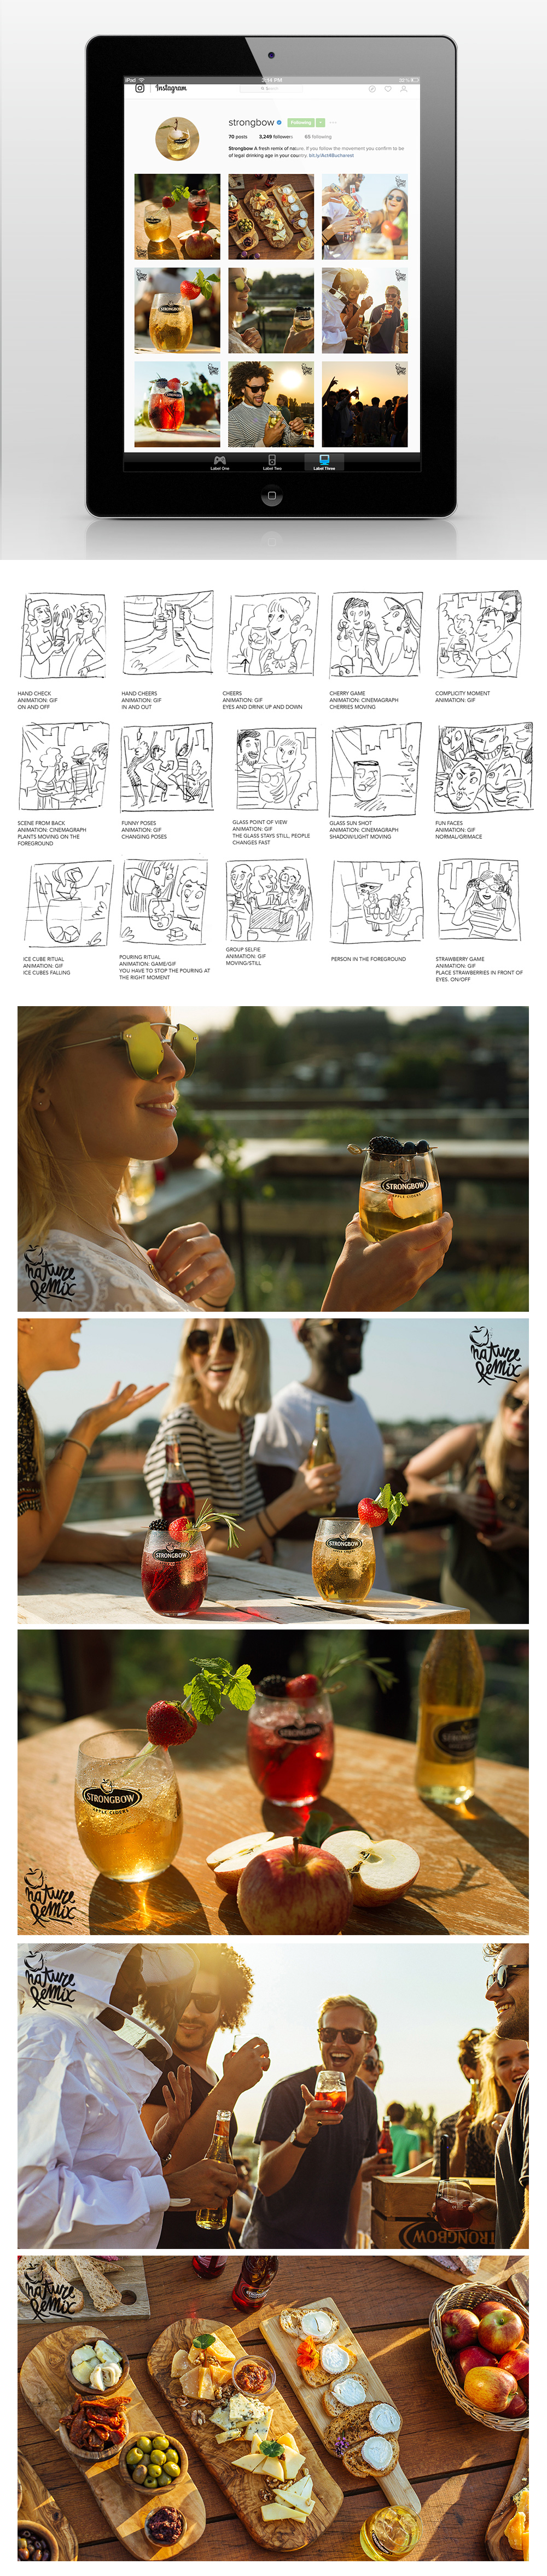 STRONGBOW – SOCIAL OCCASION